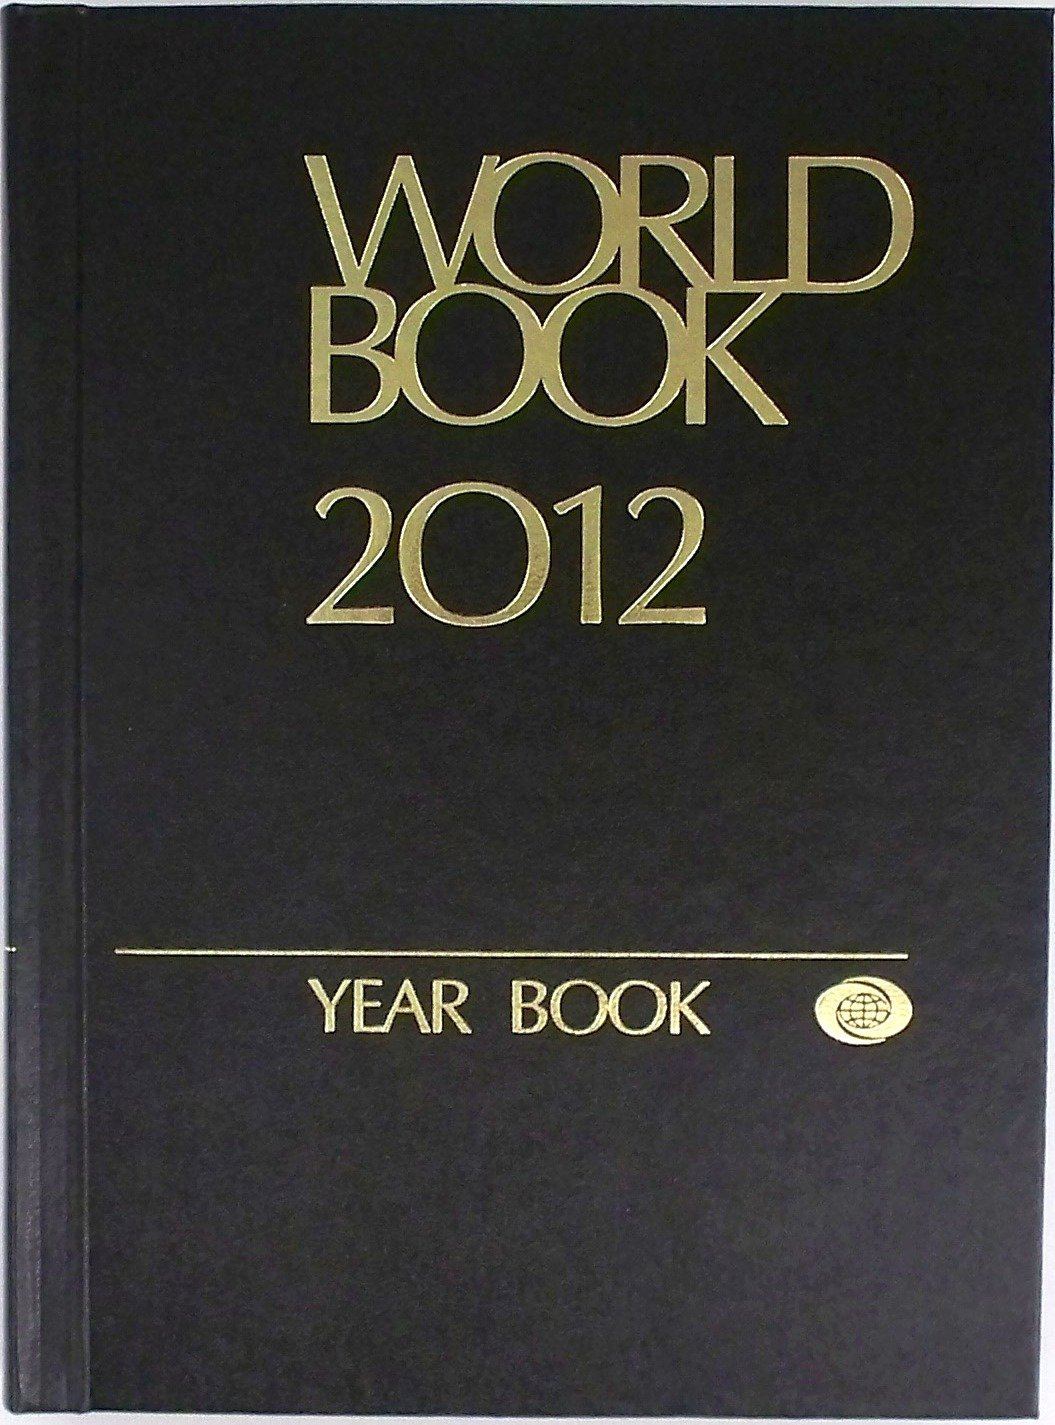 Download The 2012 World Book Year Book: A Review of the Events of 2011 (The Annual Supplement to The World Book Encyclopedia) by Inc. World Book (2012-05-03) ebook